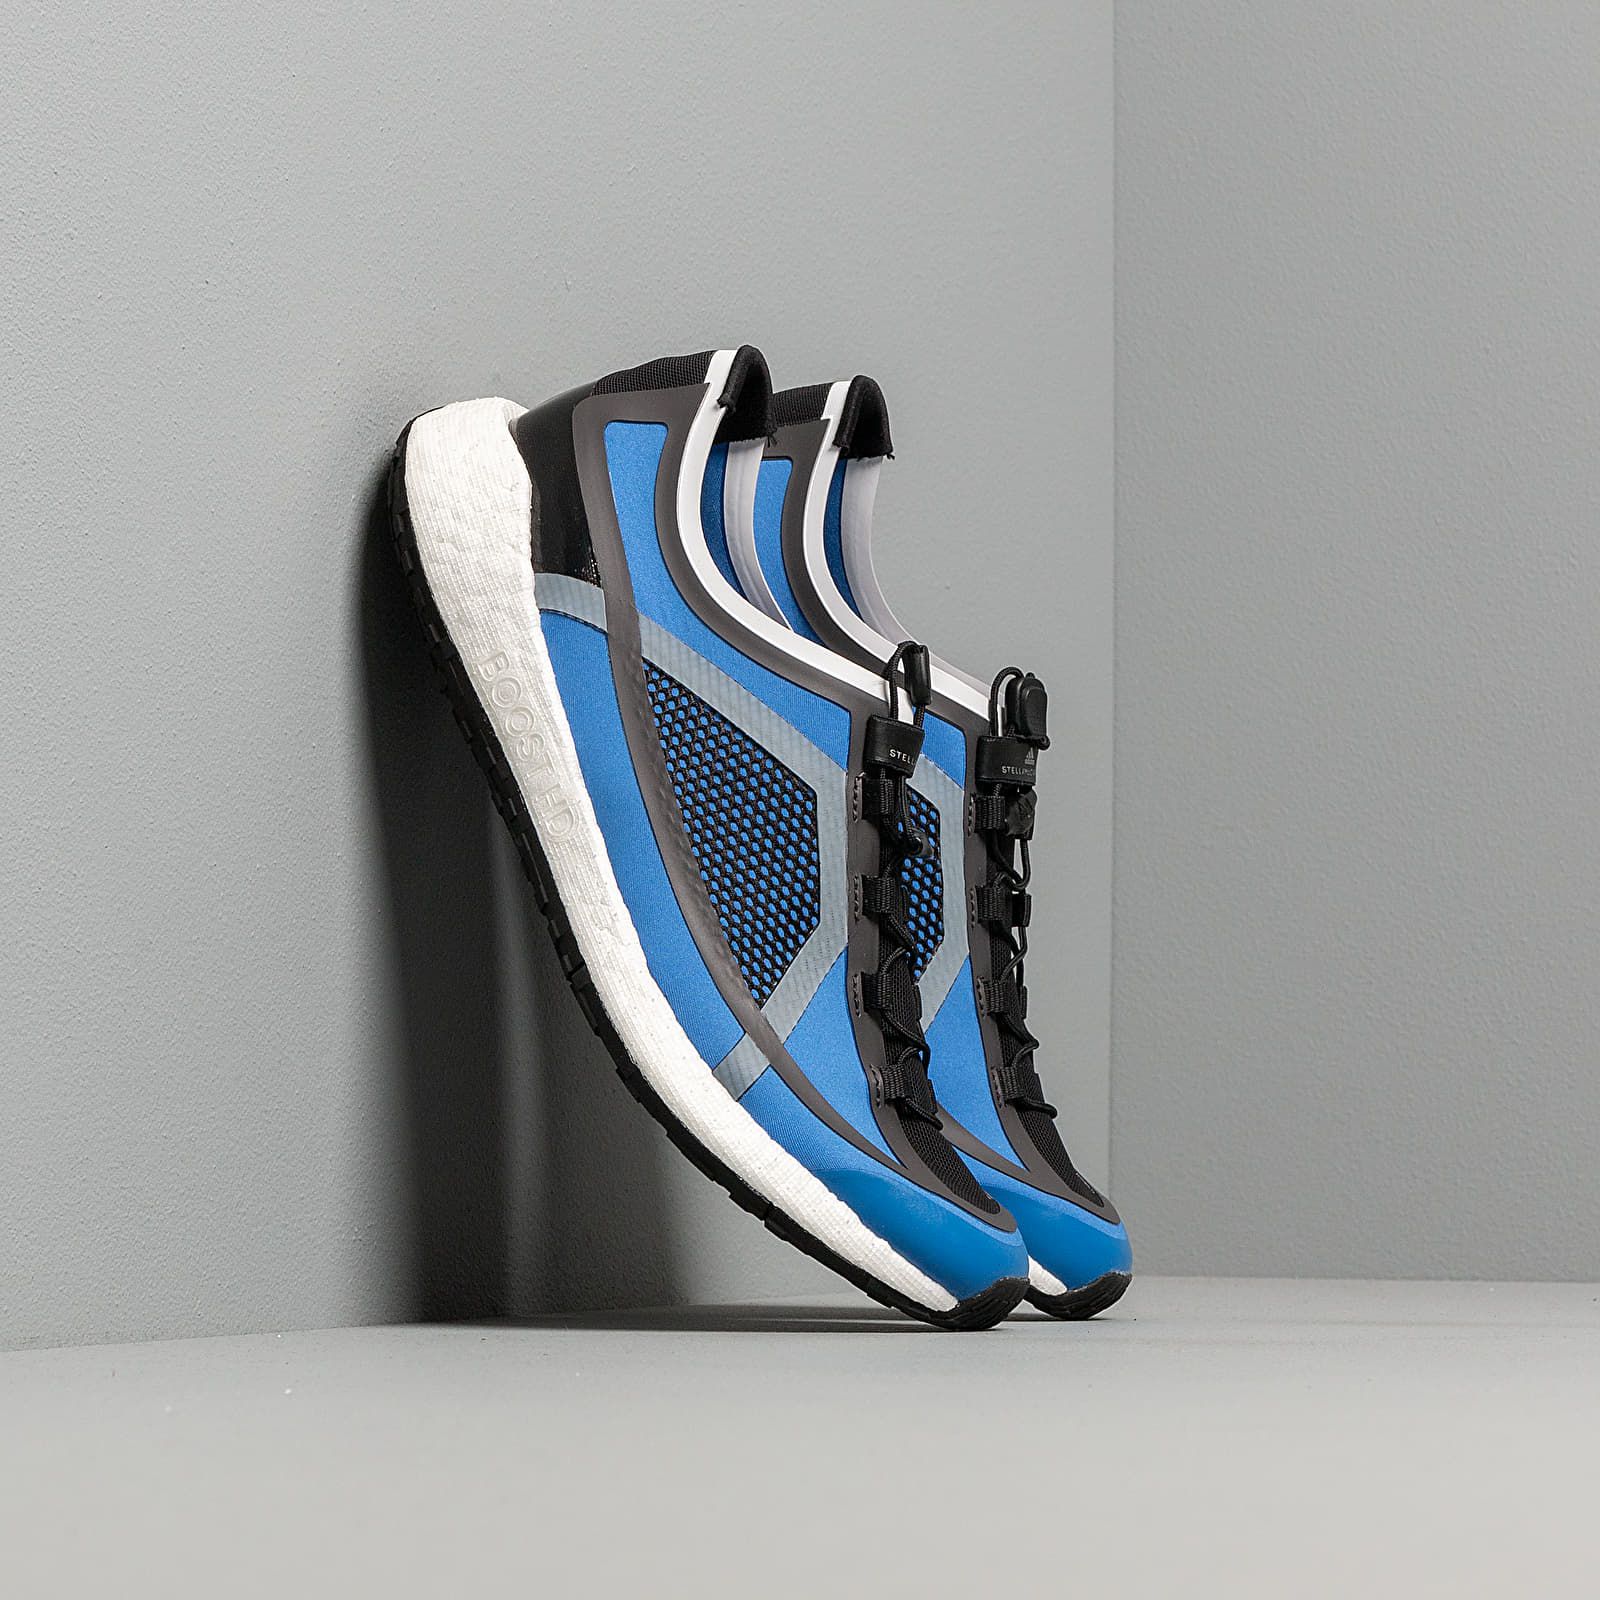 Chaussures et baskets femme adidas x Stella McCartney Pulseboost HD Blue Royal/ Utility Black/ Ftw White